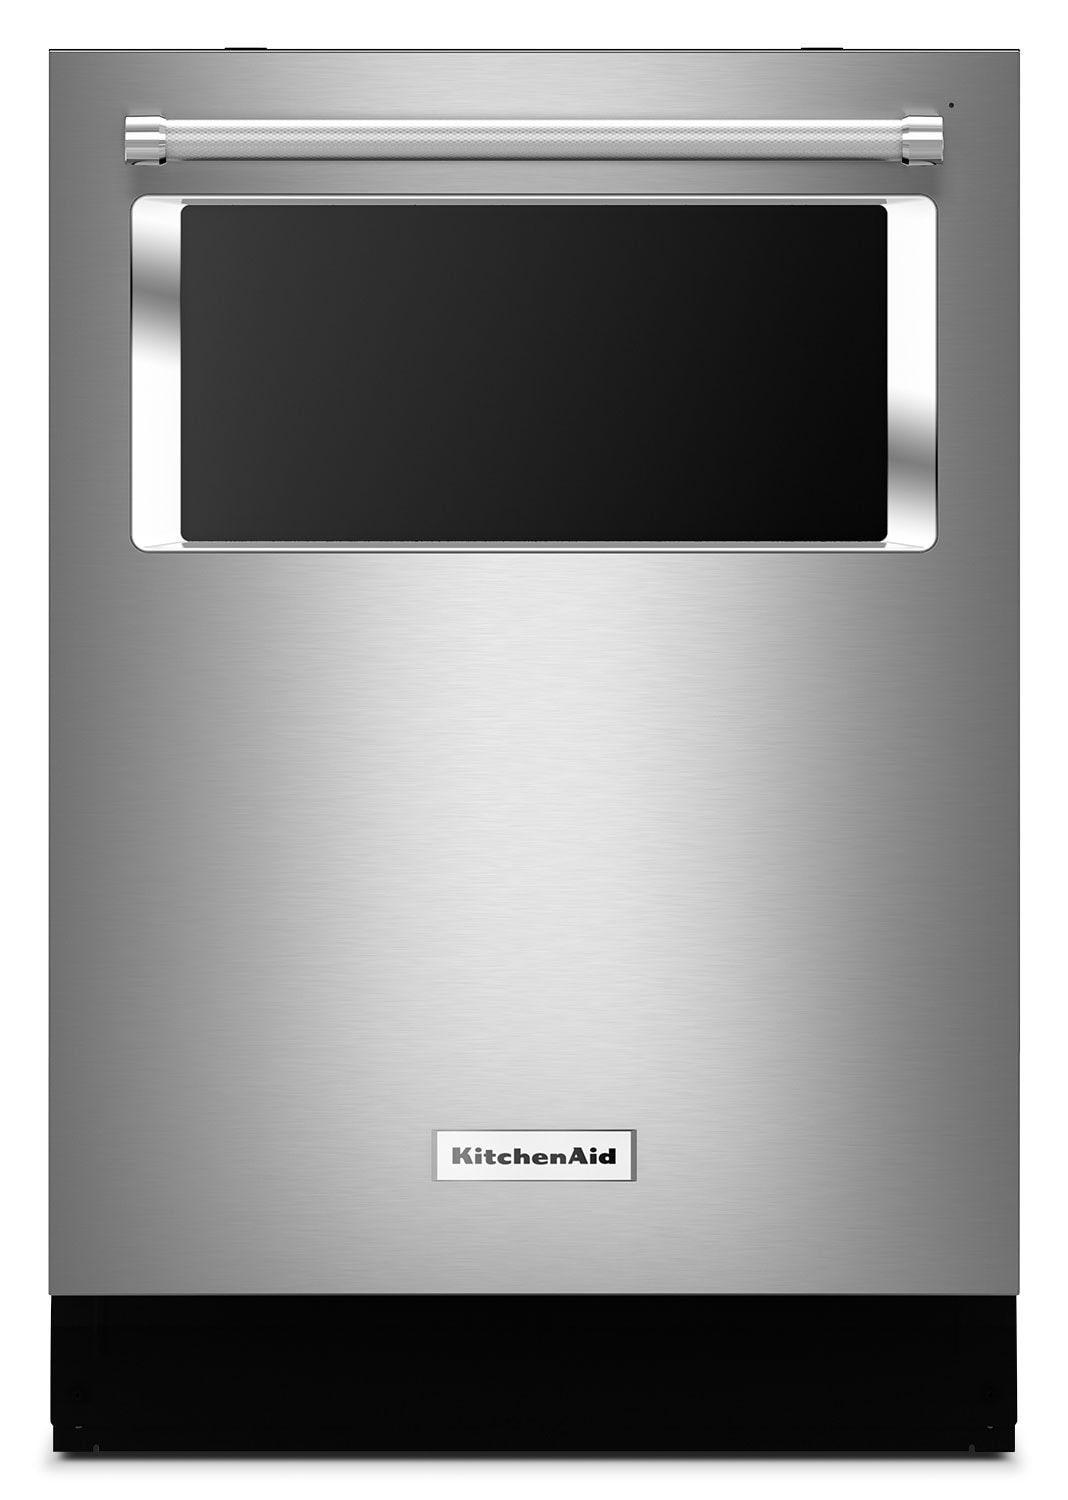 Clean-Up - KitchenAid Built-In Dishwasher with Window – KDTM384ESS